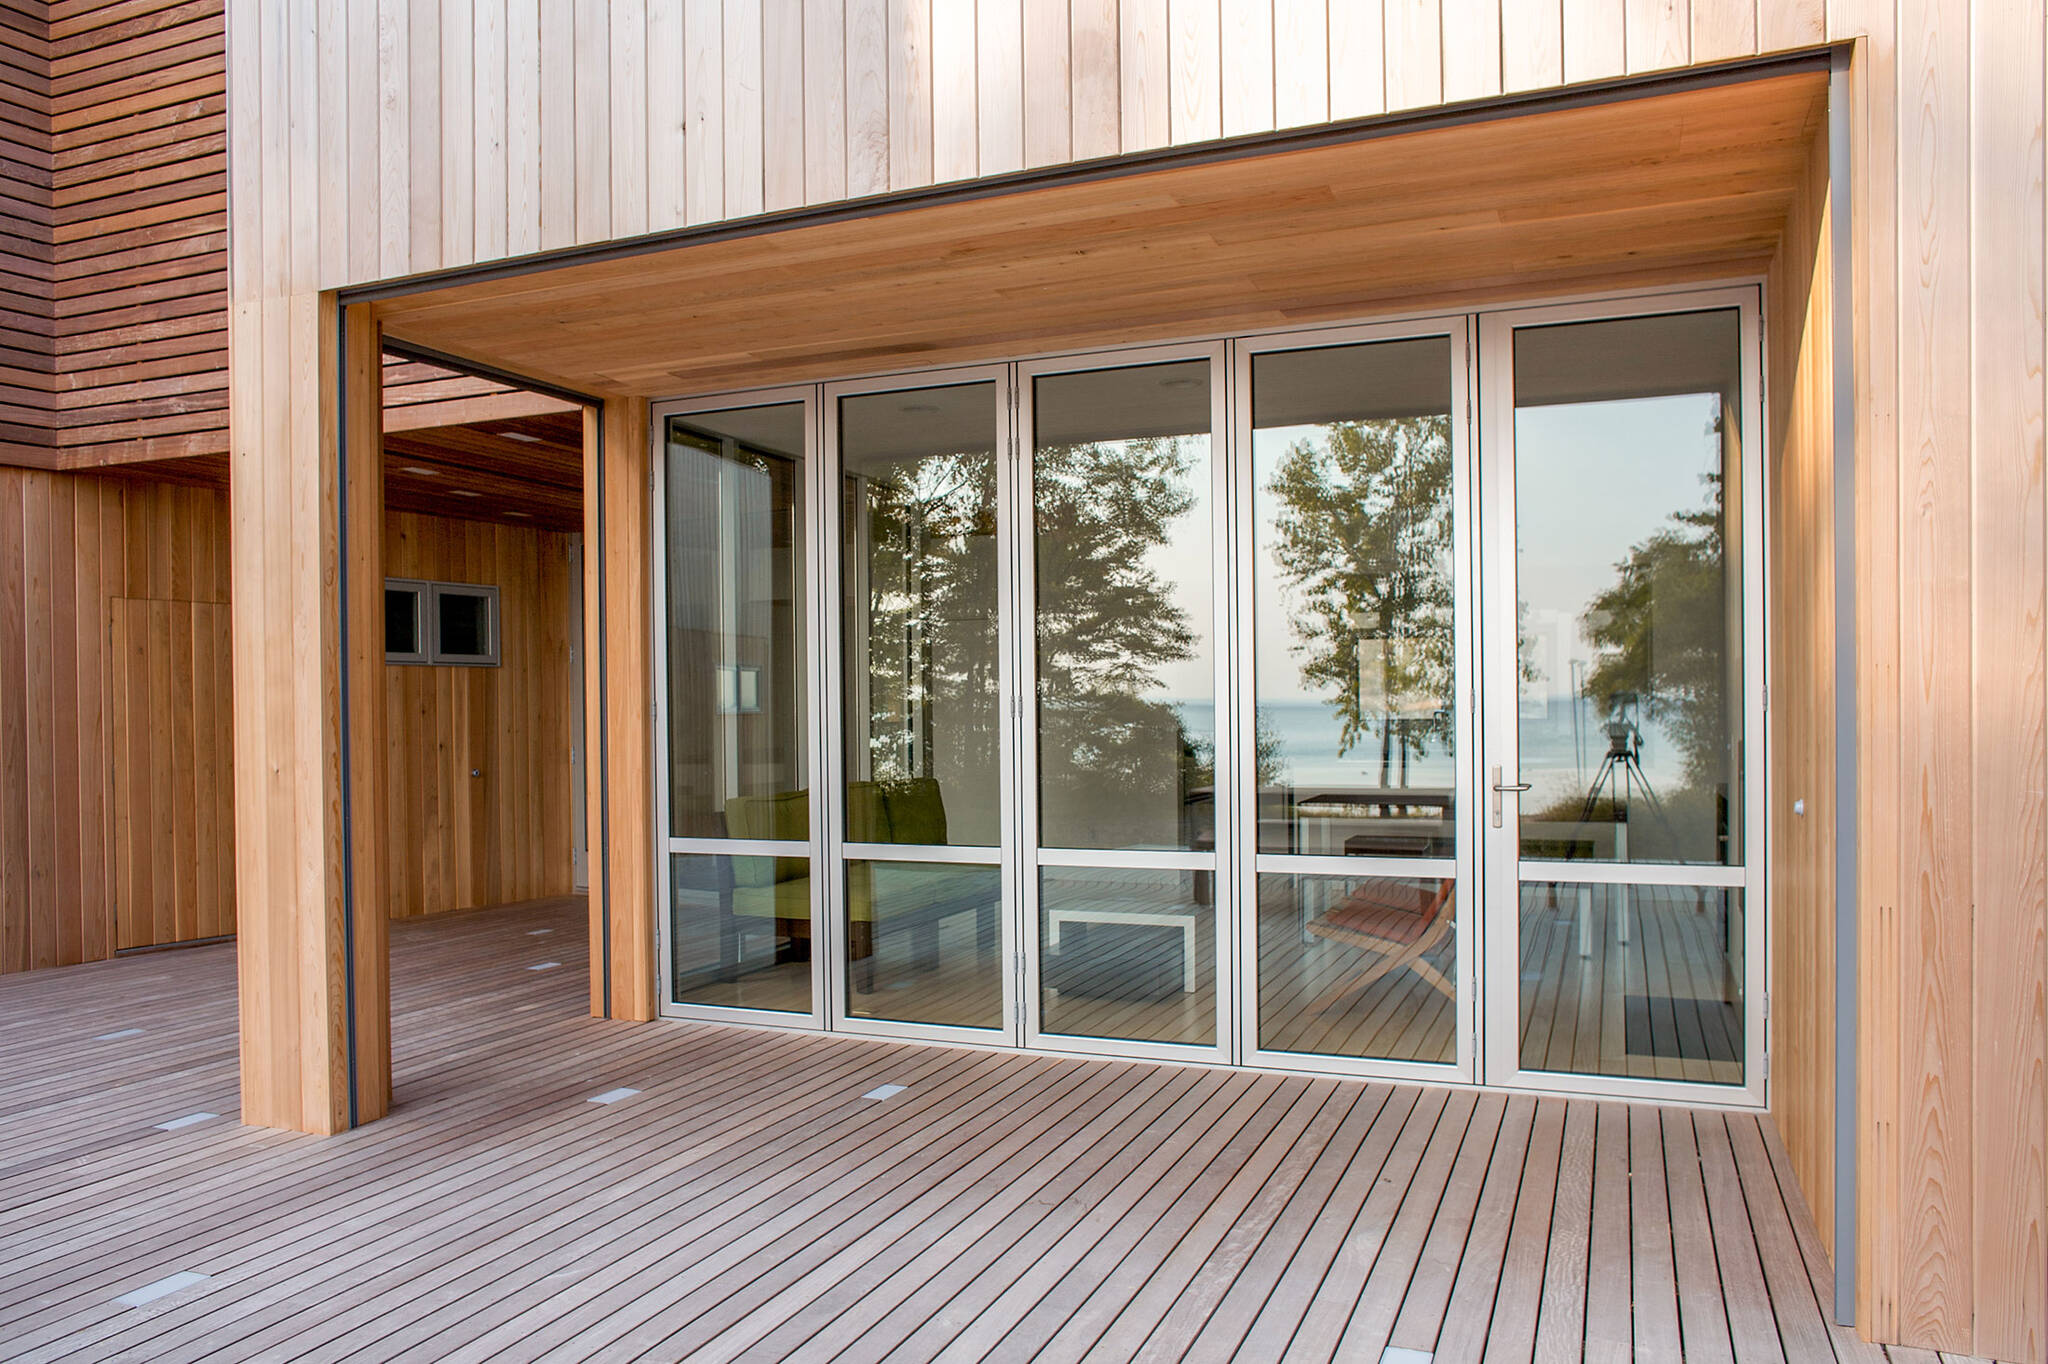 Deck folding doors sequence of the sustainable lake house project in Omena, Michigan designed by the architecture studio Danny Forster & Architecture